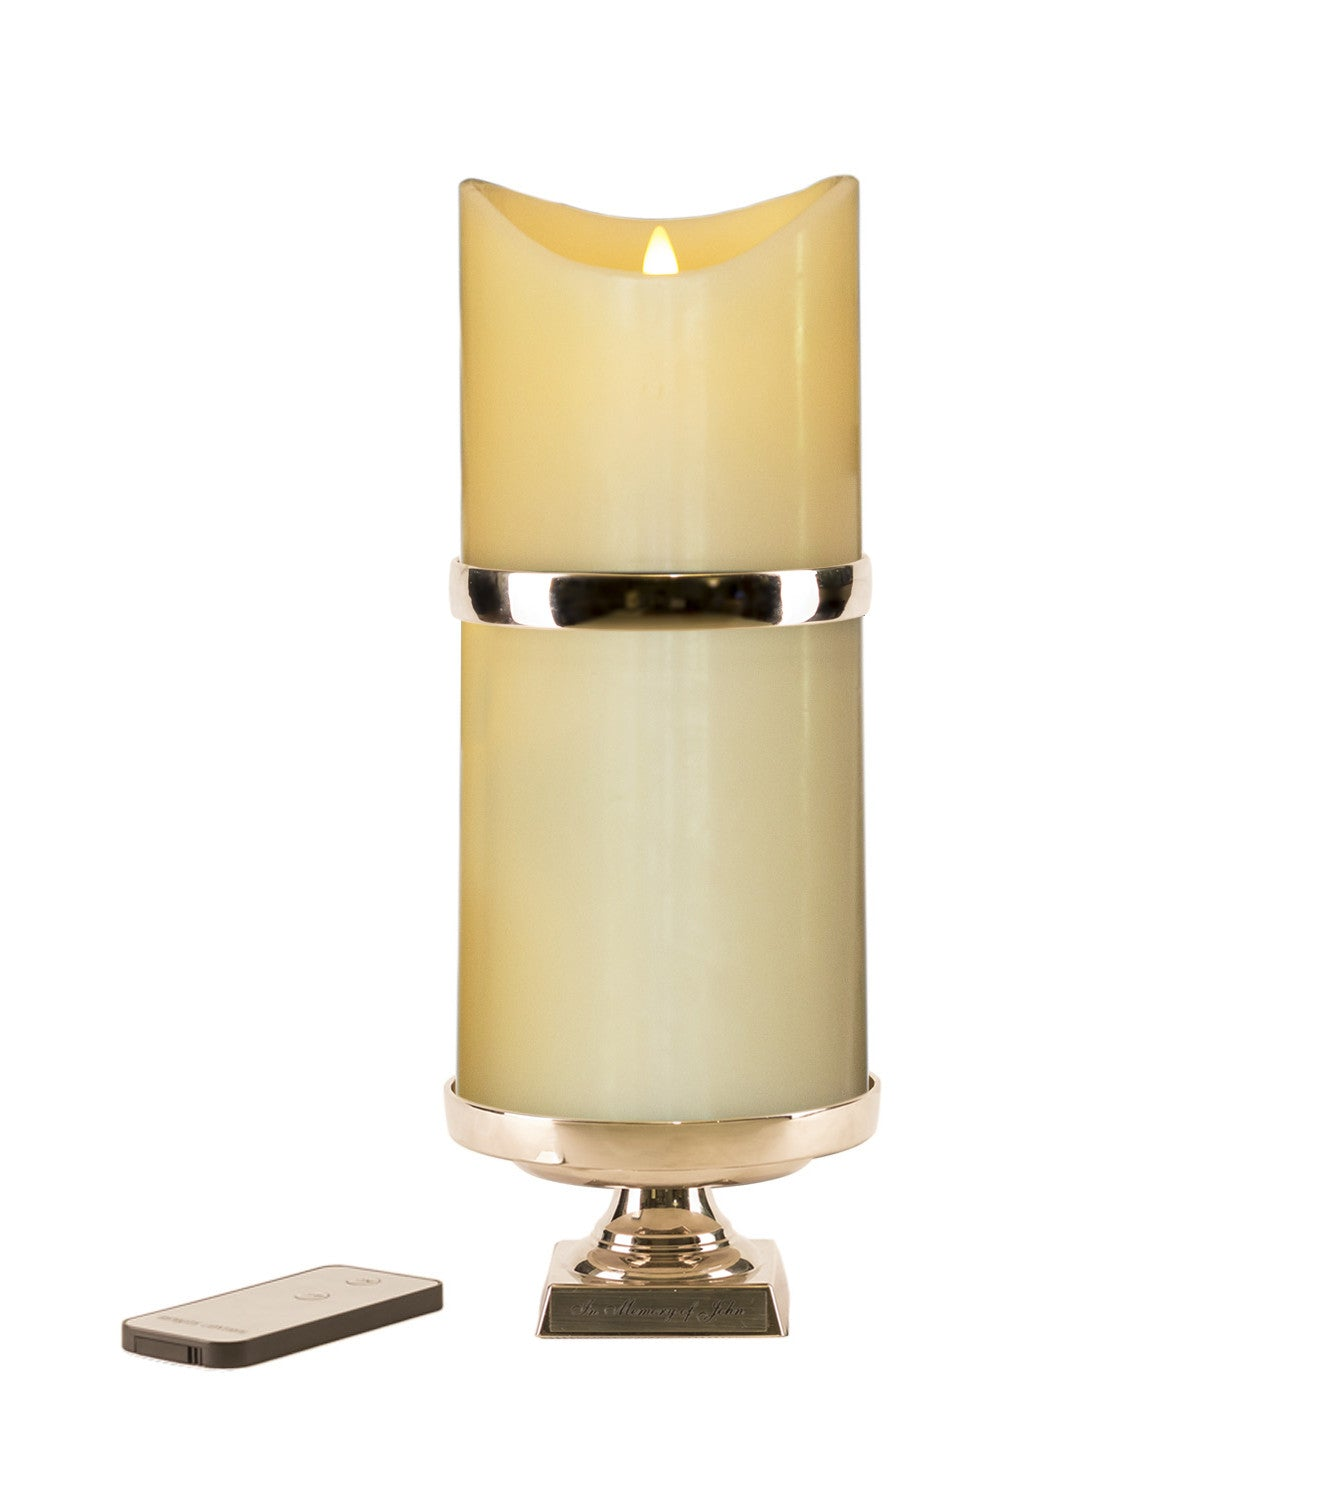 Remembrance Storage Candle